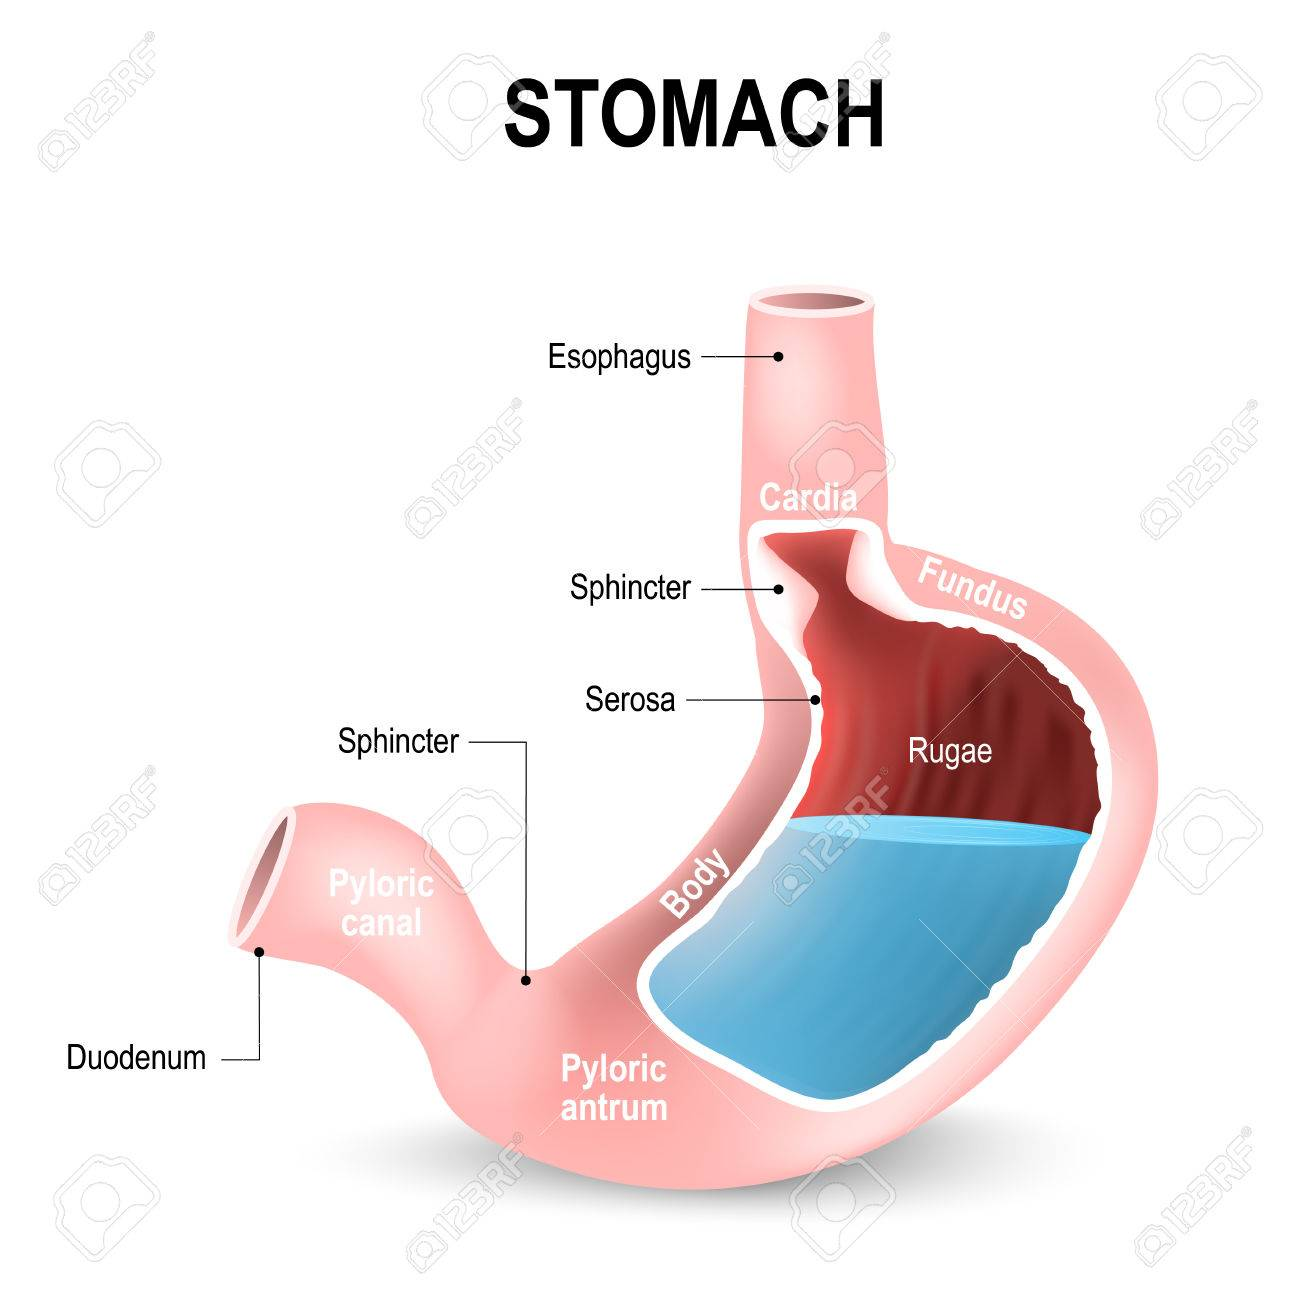 hight resolution of sections of the stomach parts and regions duodenum esophagus sphincter and body